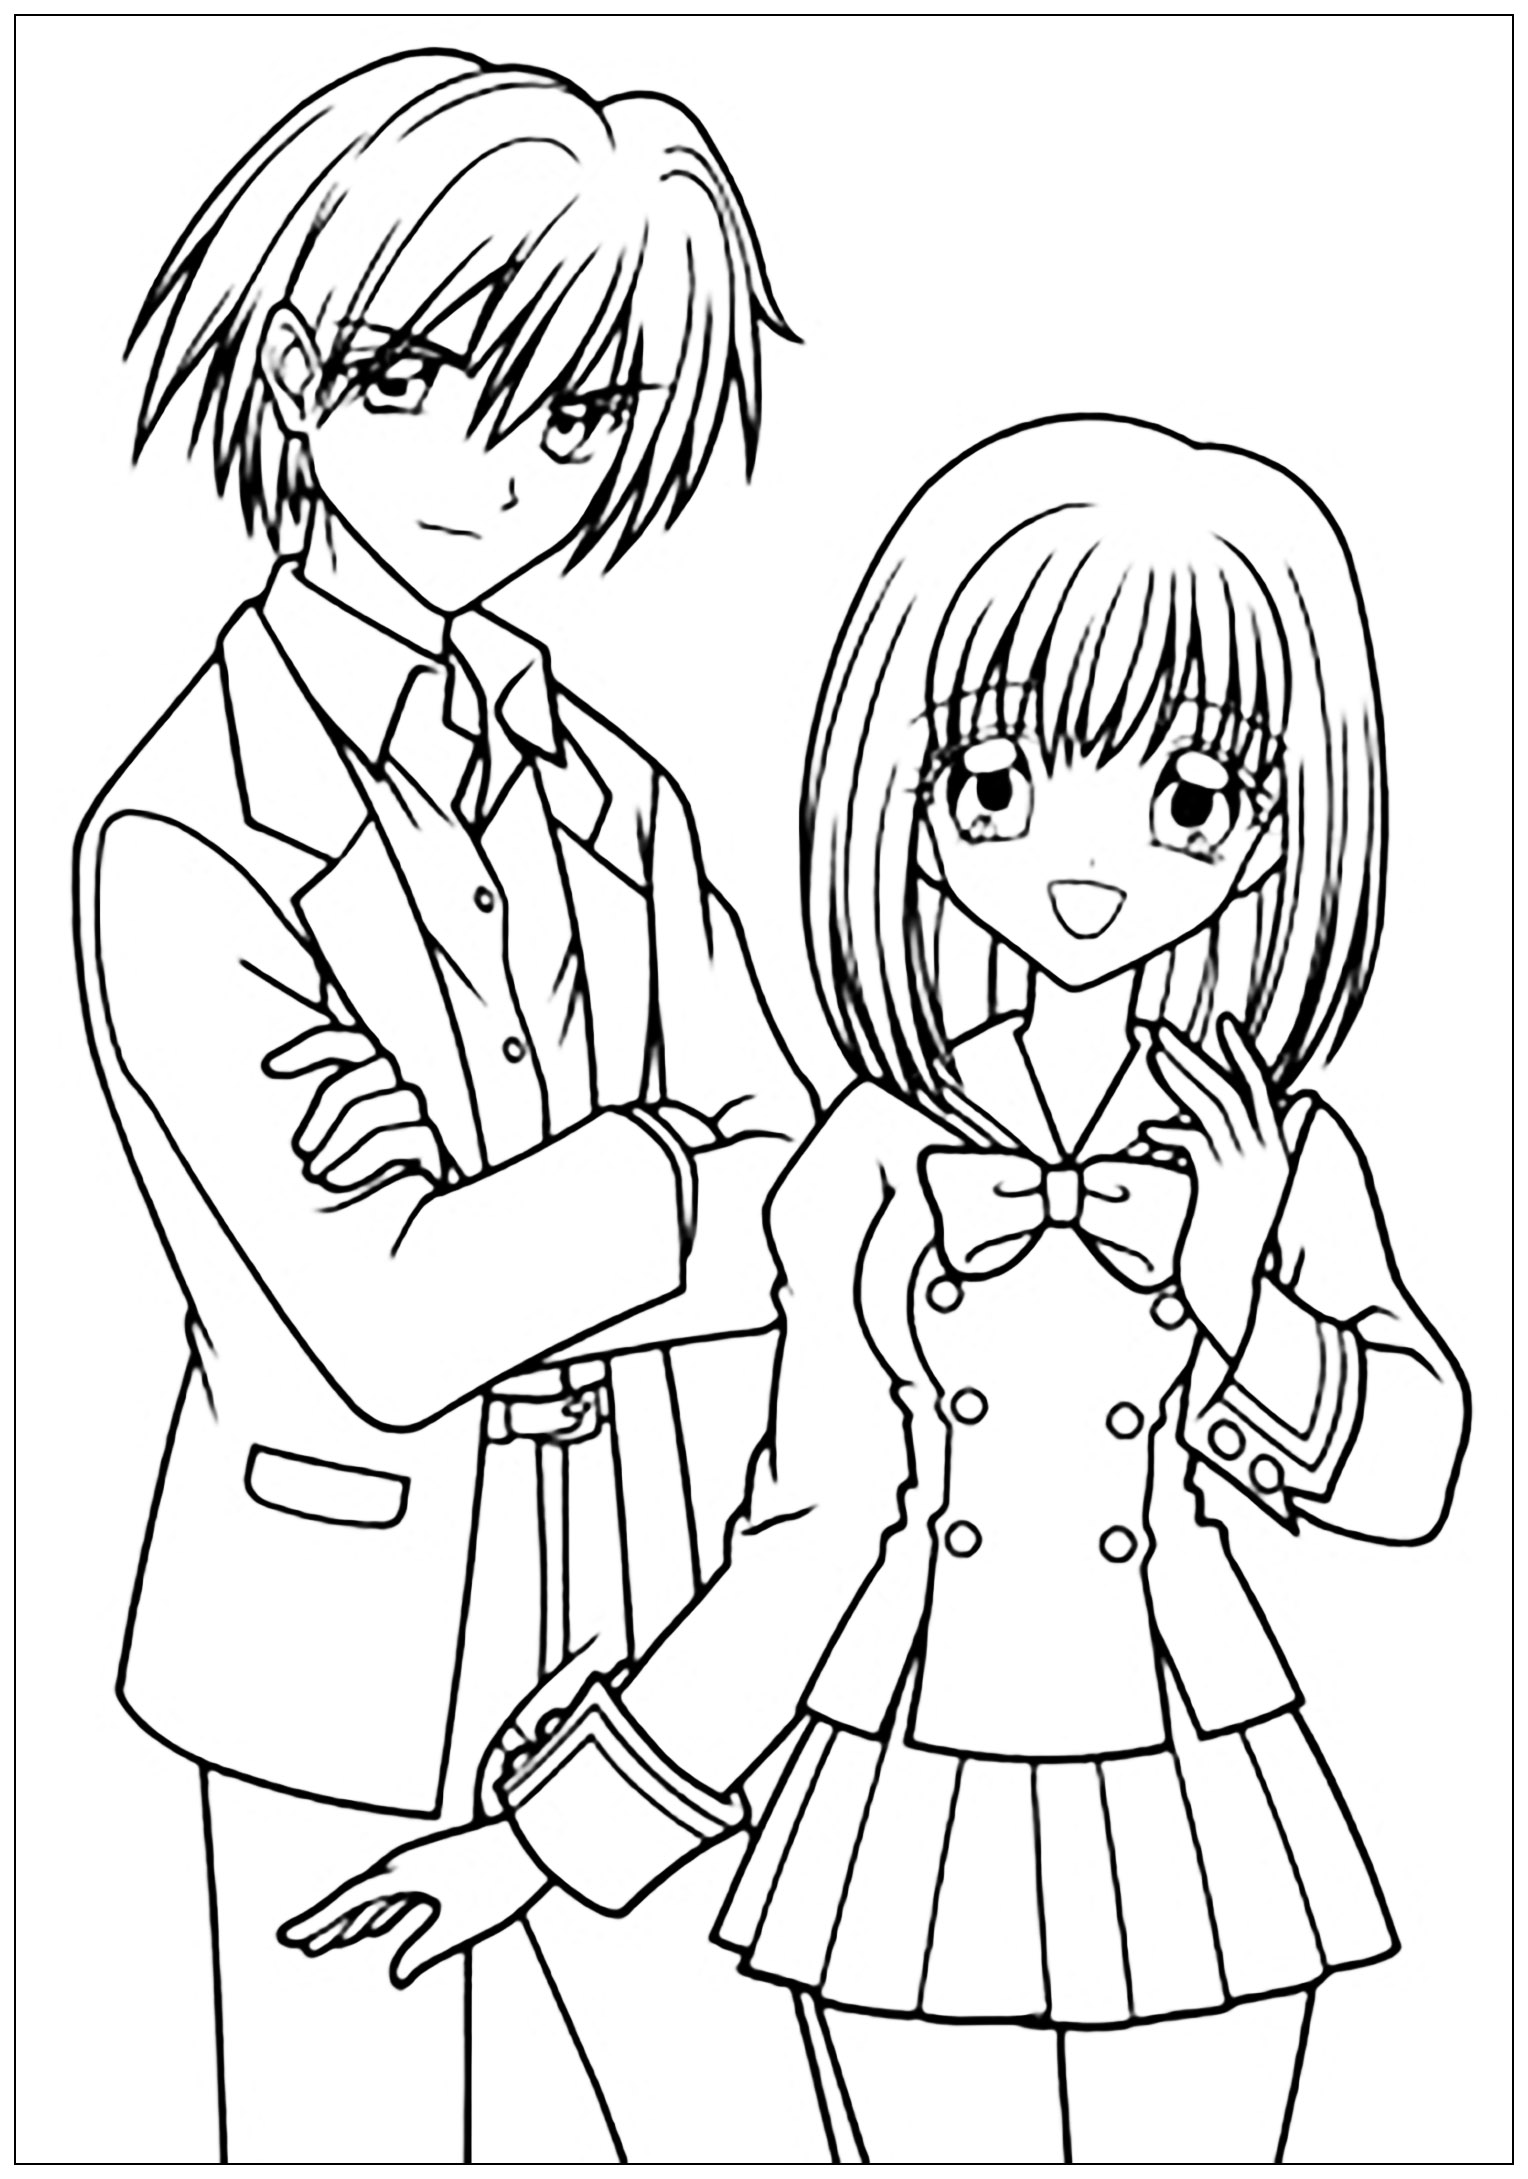 Manga drawing schoolchildren in uniform